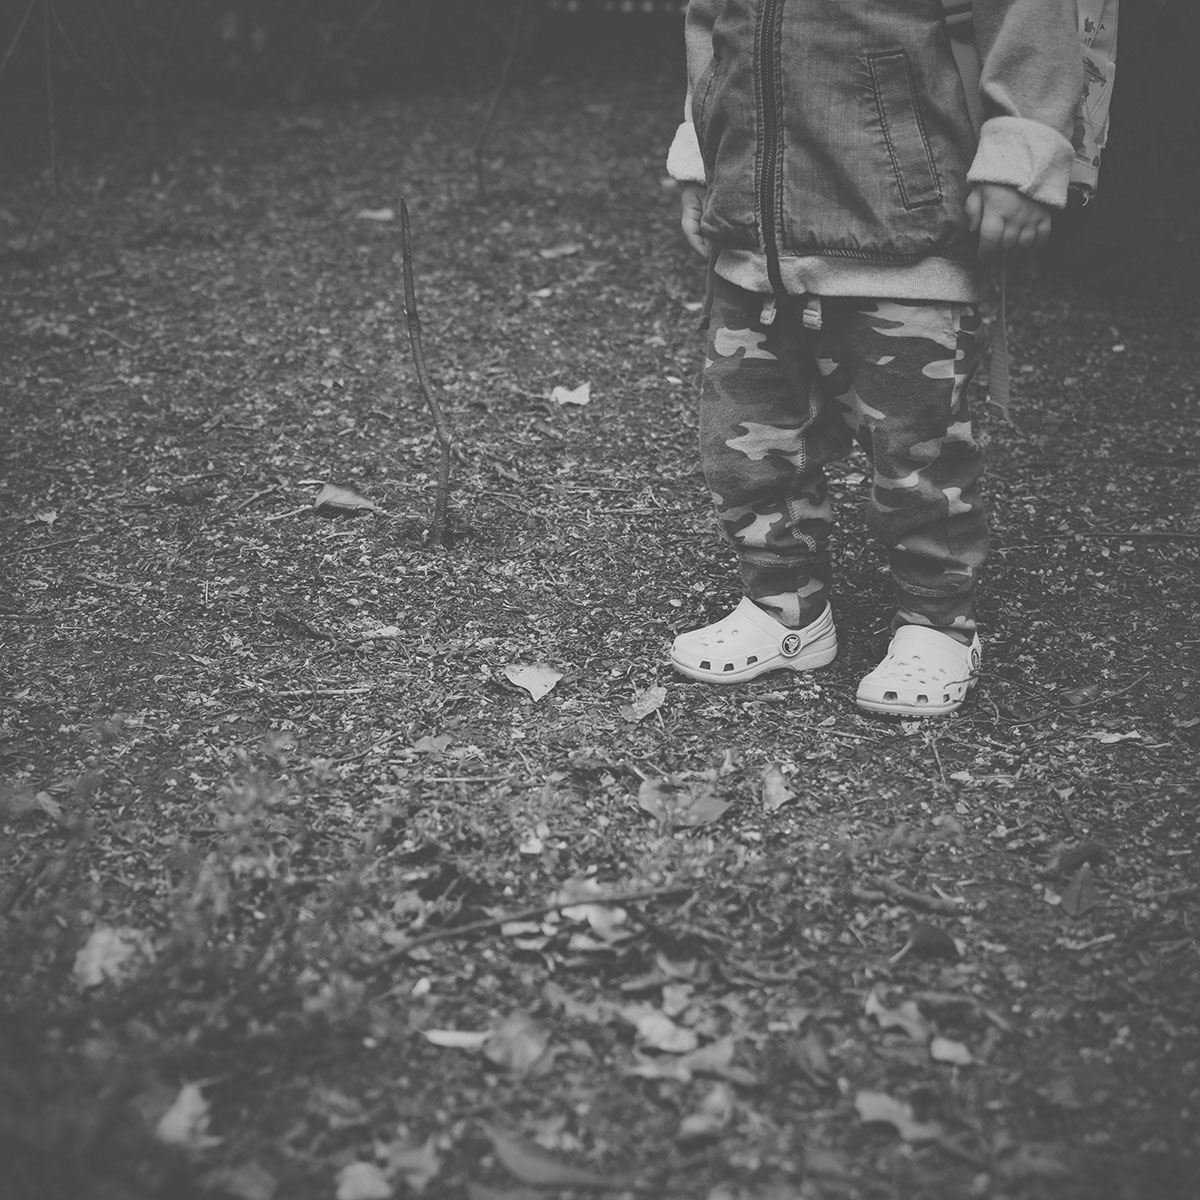 Our month in insta-snaps; May 2016 - Toddler standing in the park wearing his Crocs and adventurer backpack for a Fashion Friday OOTD